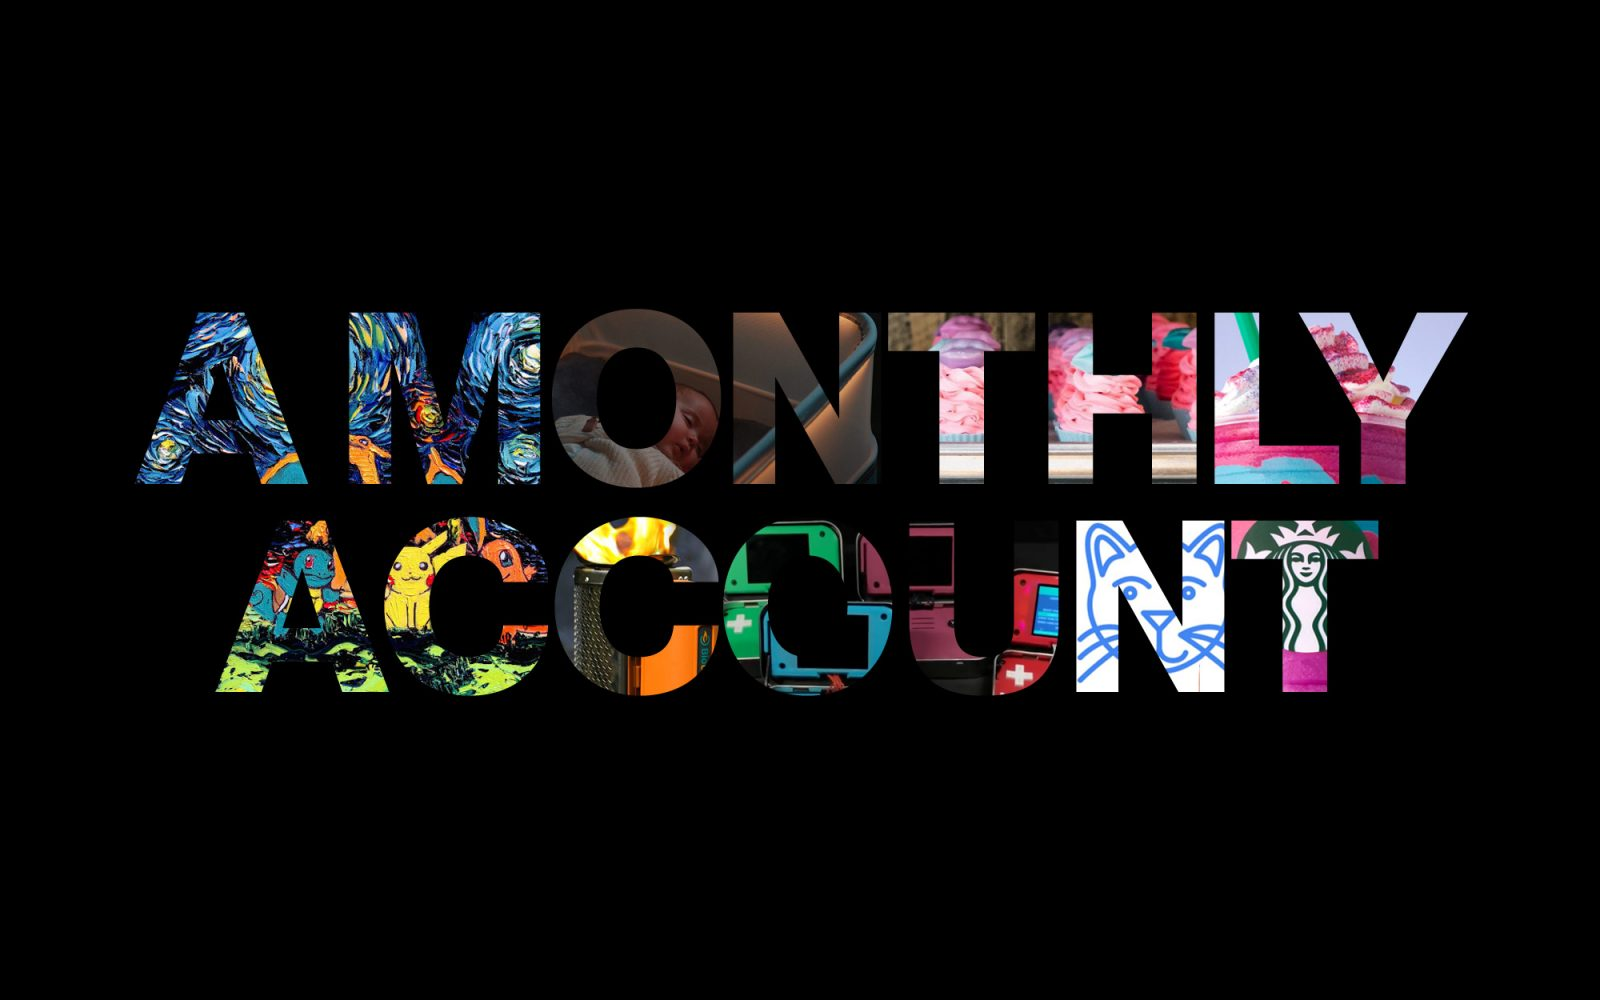 A Monthly Account image with various pictures inside the letters